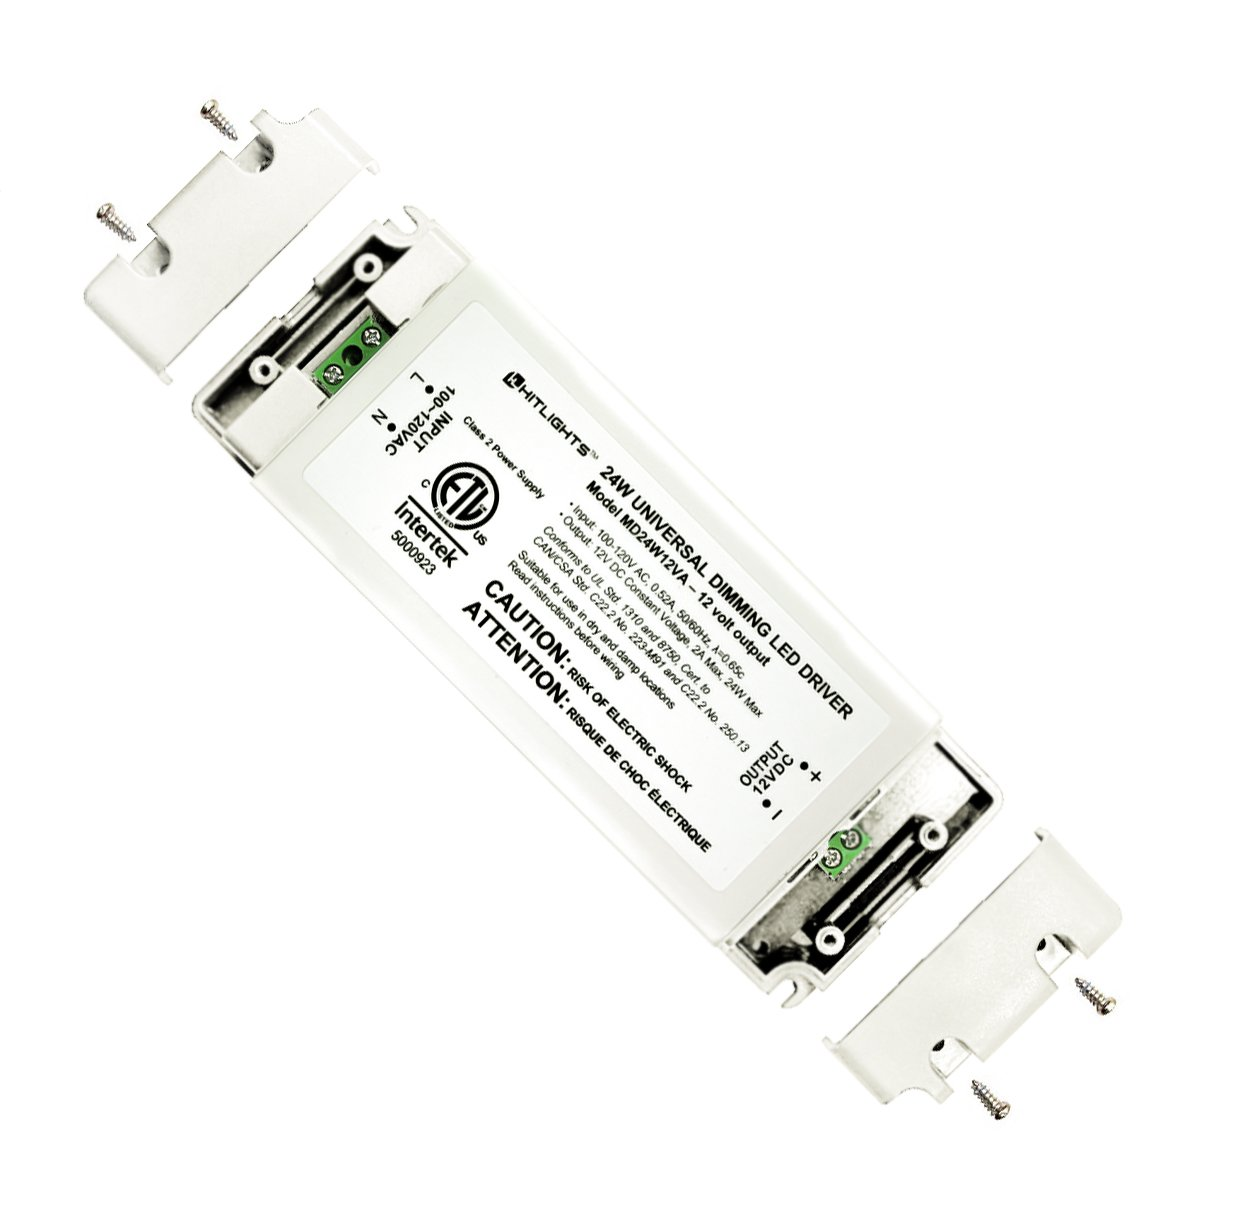 HitLights 24 Watt Dimmable Driver, Universal, for LED Light Strips - 110V AC-12V DC Transformer. Compatible with Lutron and Leviton by HitLights (Image #2)